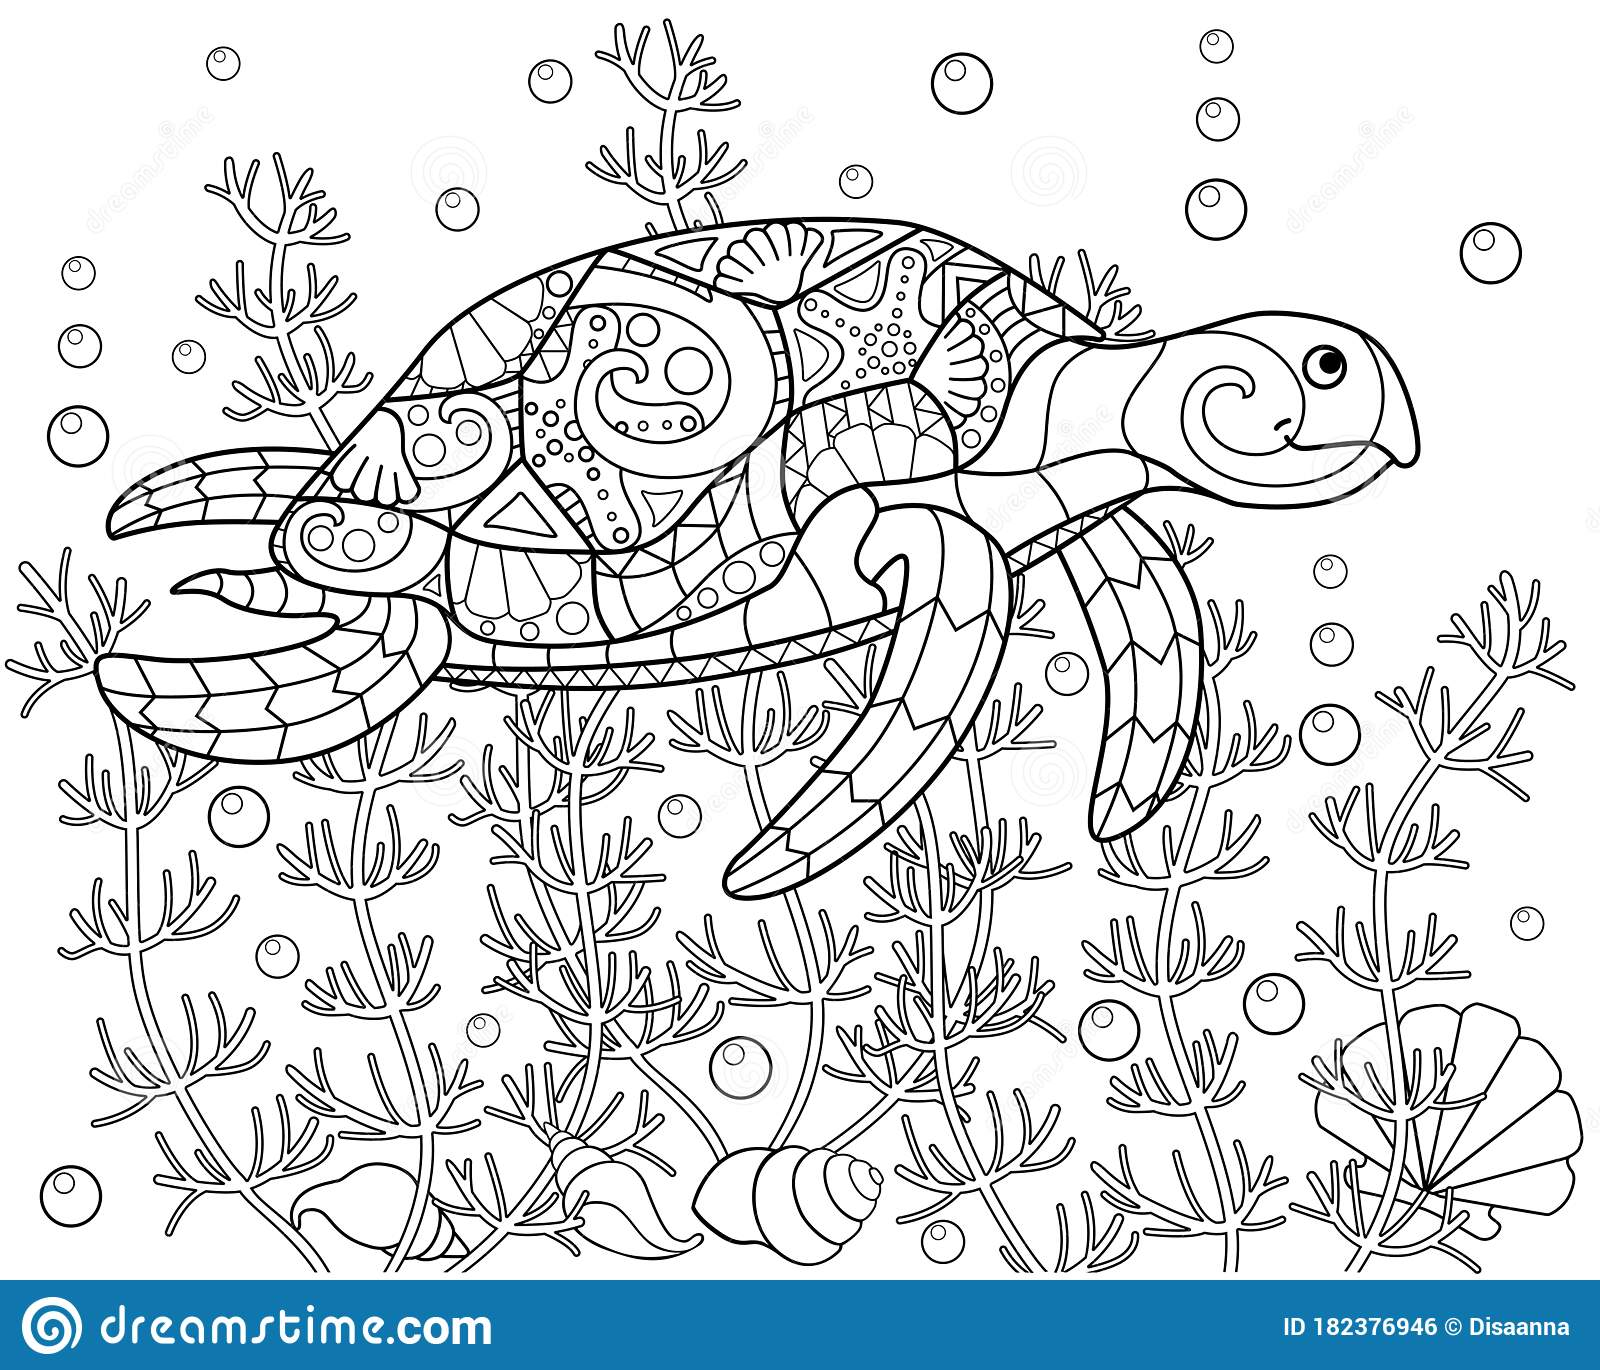 Outstanding Sea Turtle Coloring Pictures – haramiran | 1370x1600